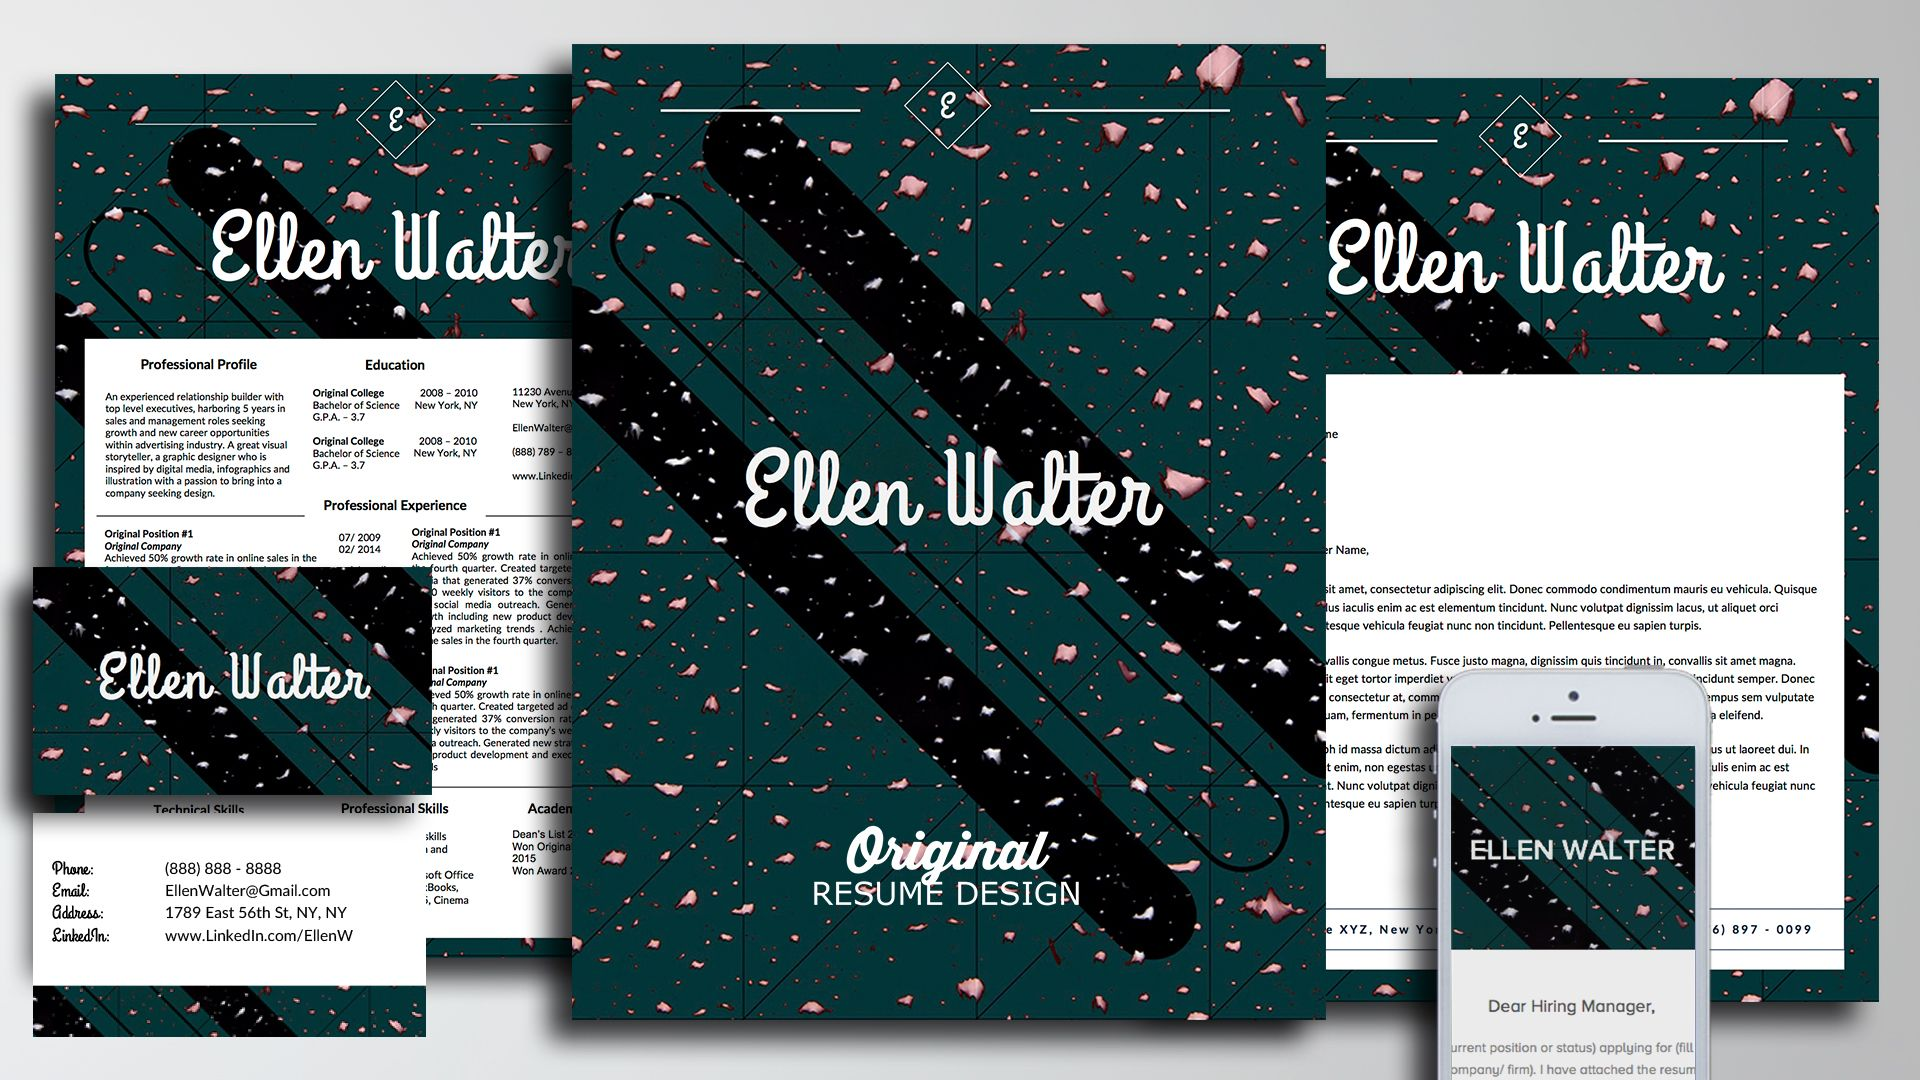 The personal branding kit for job seekers in ellen walter design the personal branding kit for job seekers in ellen walter design includes resume template cover letter template business card template email template reheart Choice Image